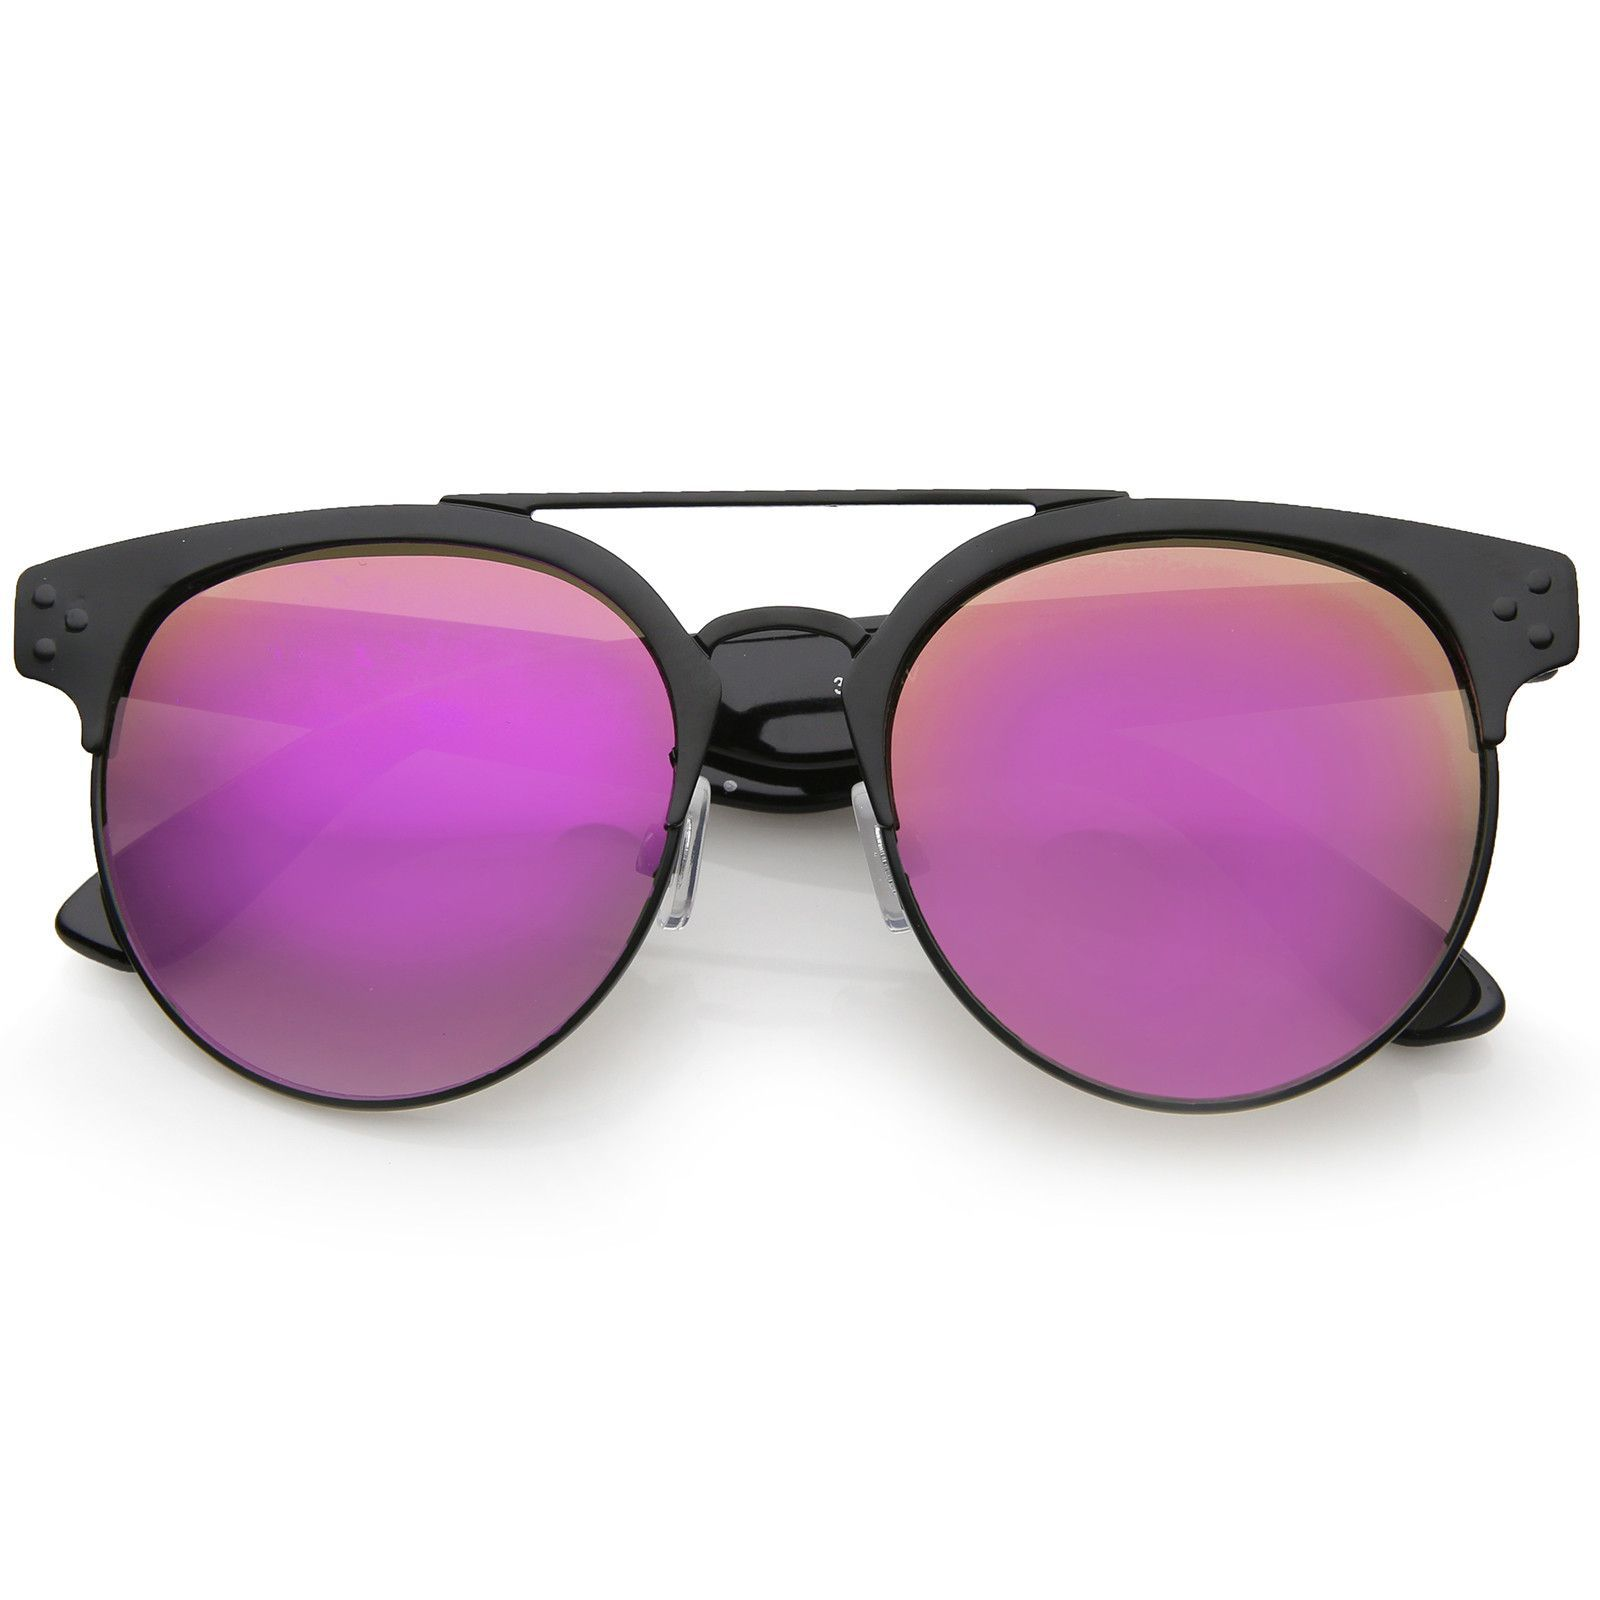 Modern Horn Rimmed Brow Bar Colored Mirror Round Aviator Sunglasses 54mm